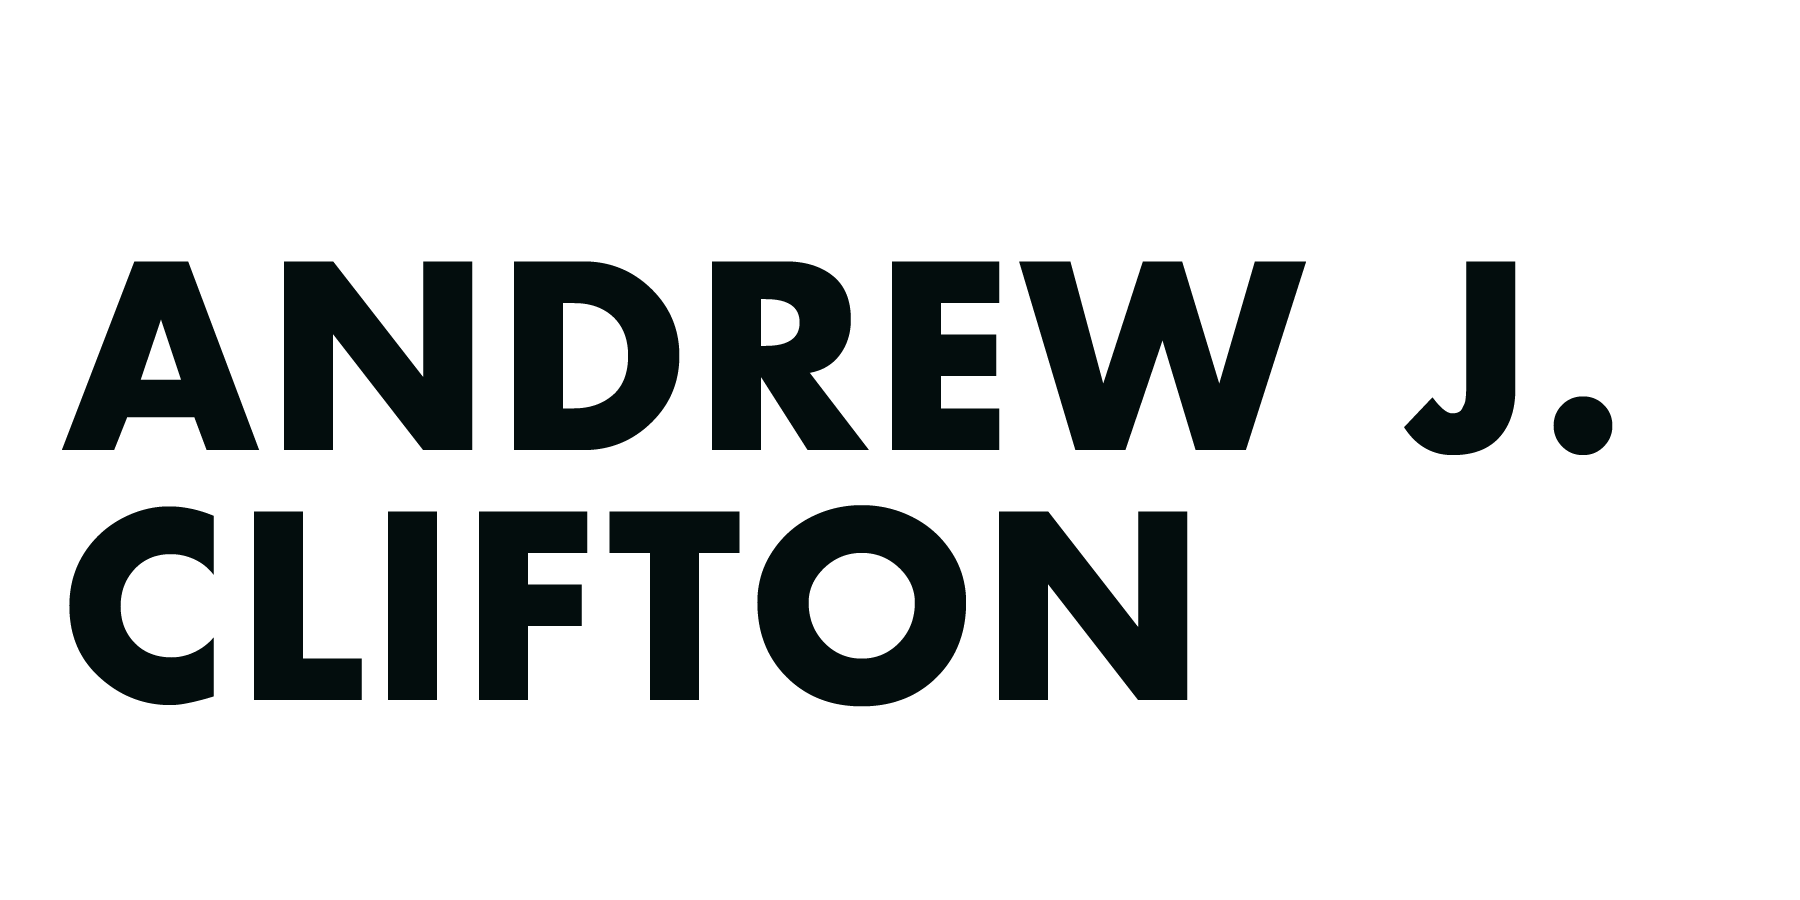 andrew j clifton